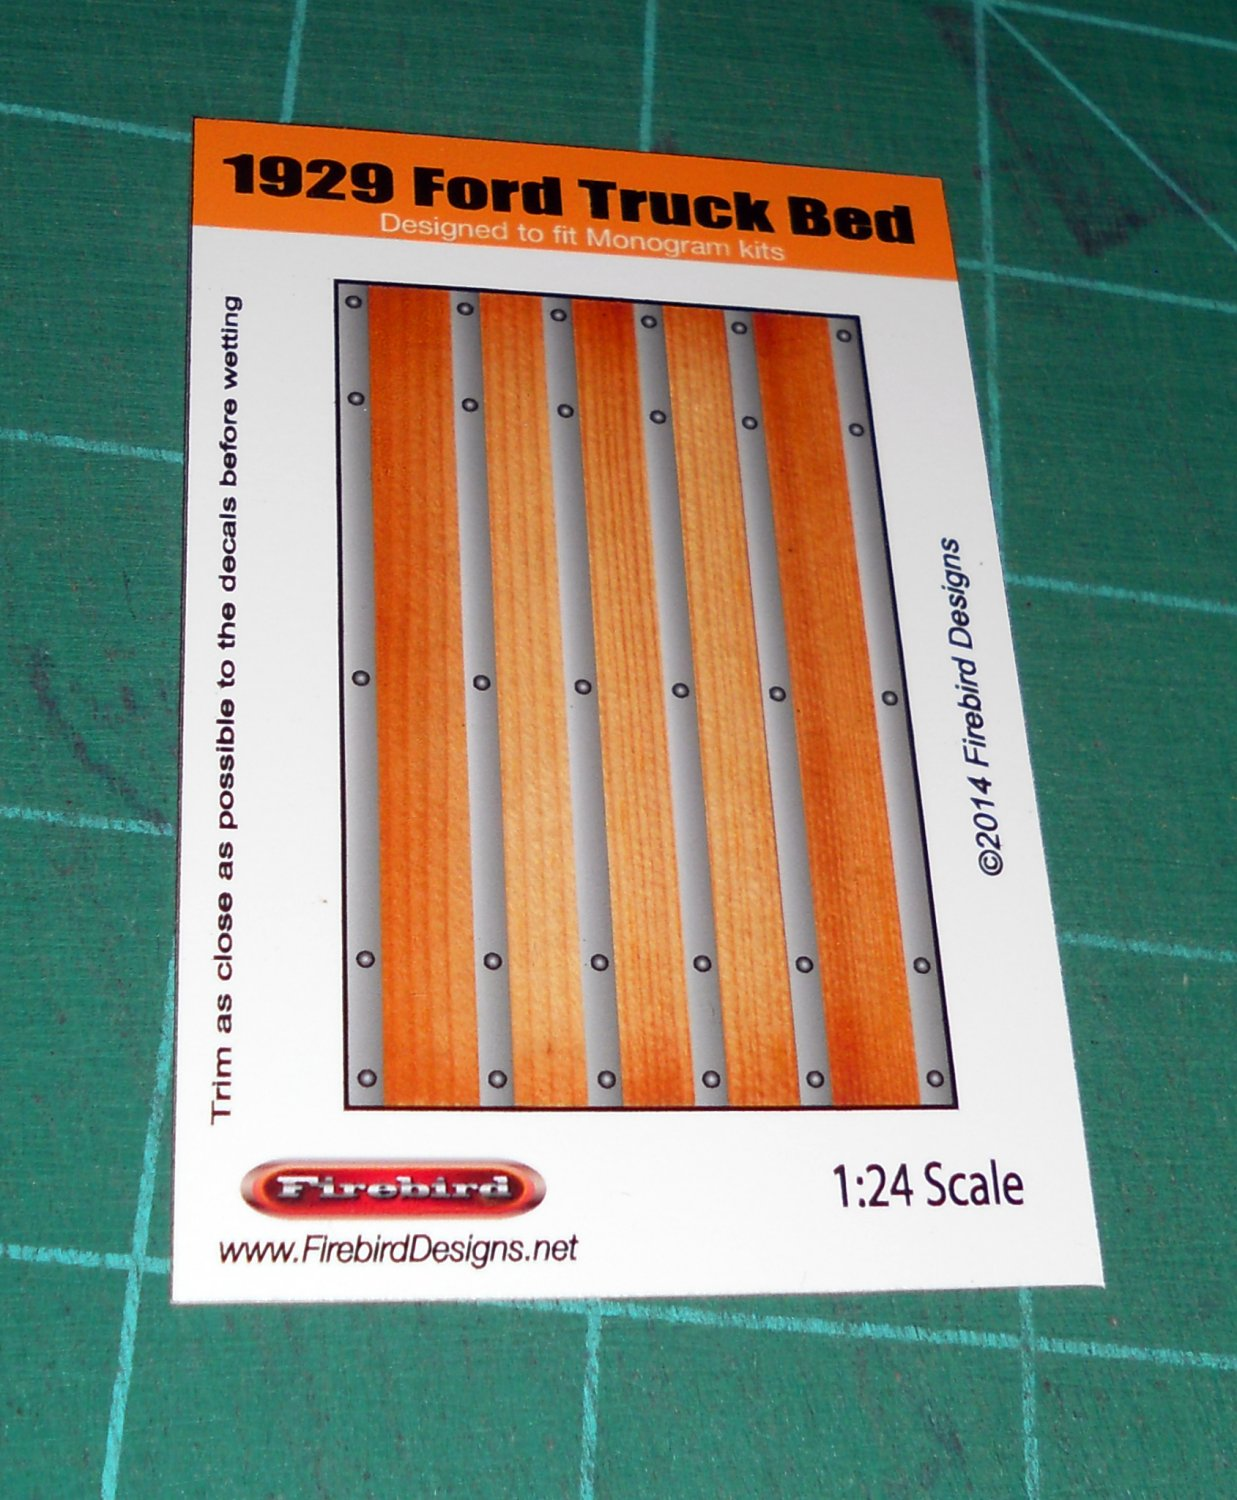 1929 Ford Truck Wood Bed Decal 1:24 Scale